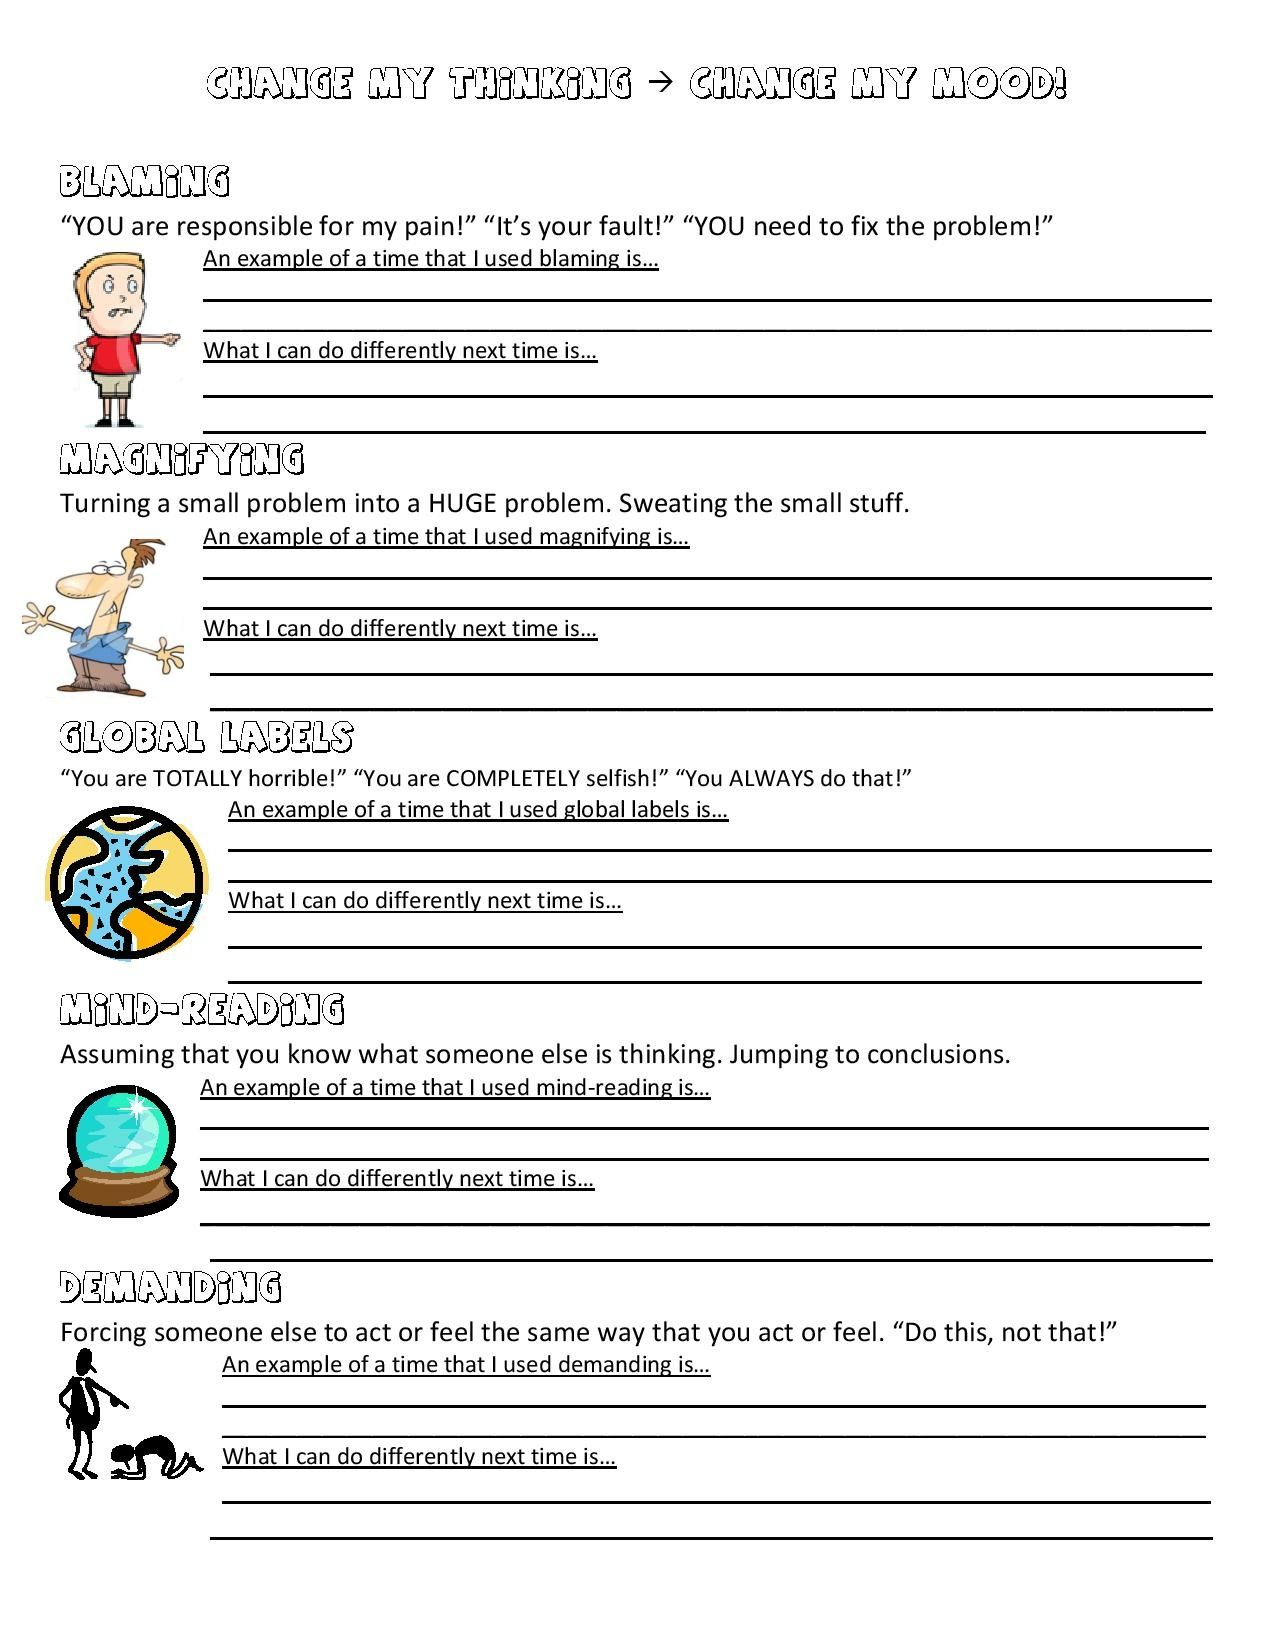 Free Worksheet Coping Skills Worksheets coping skills worksheets for adults rringband 17 best images about helpful on pinterest anxiety